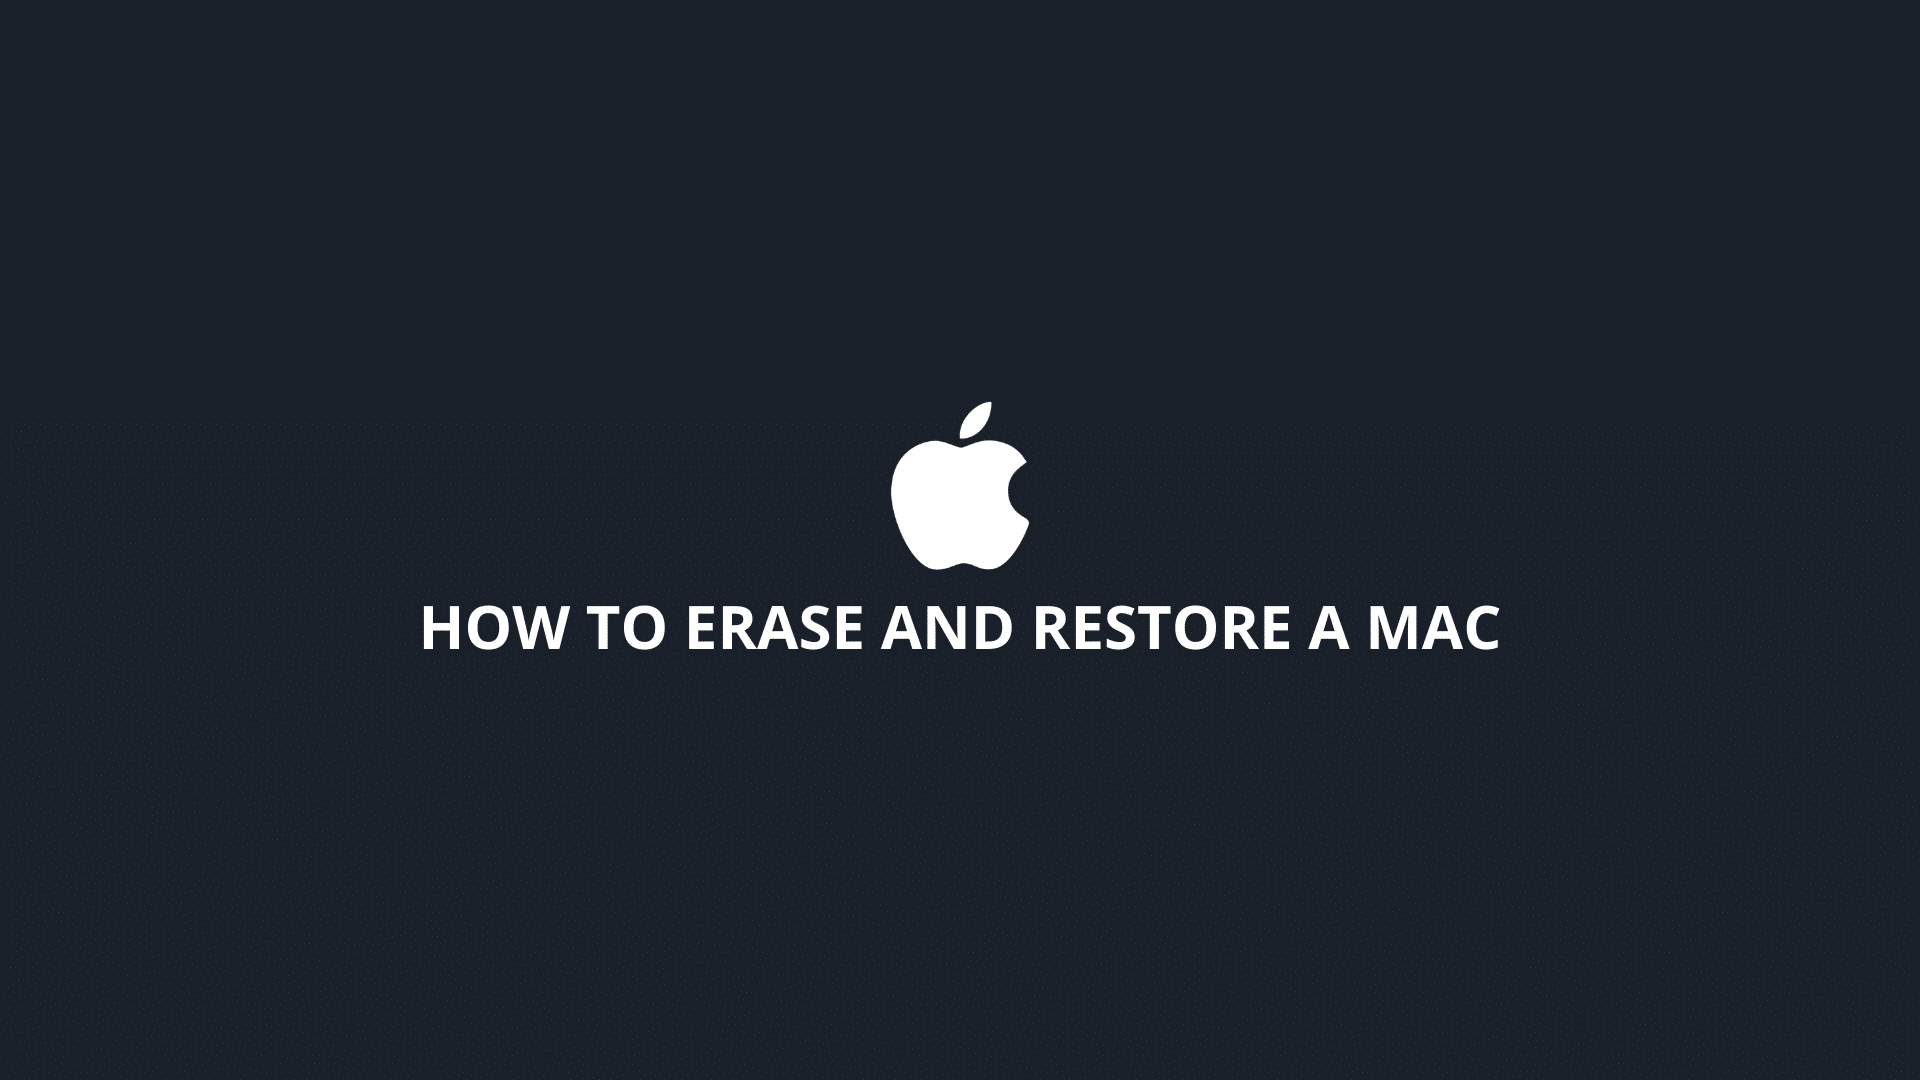 How to Erase and Restore a Mac